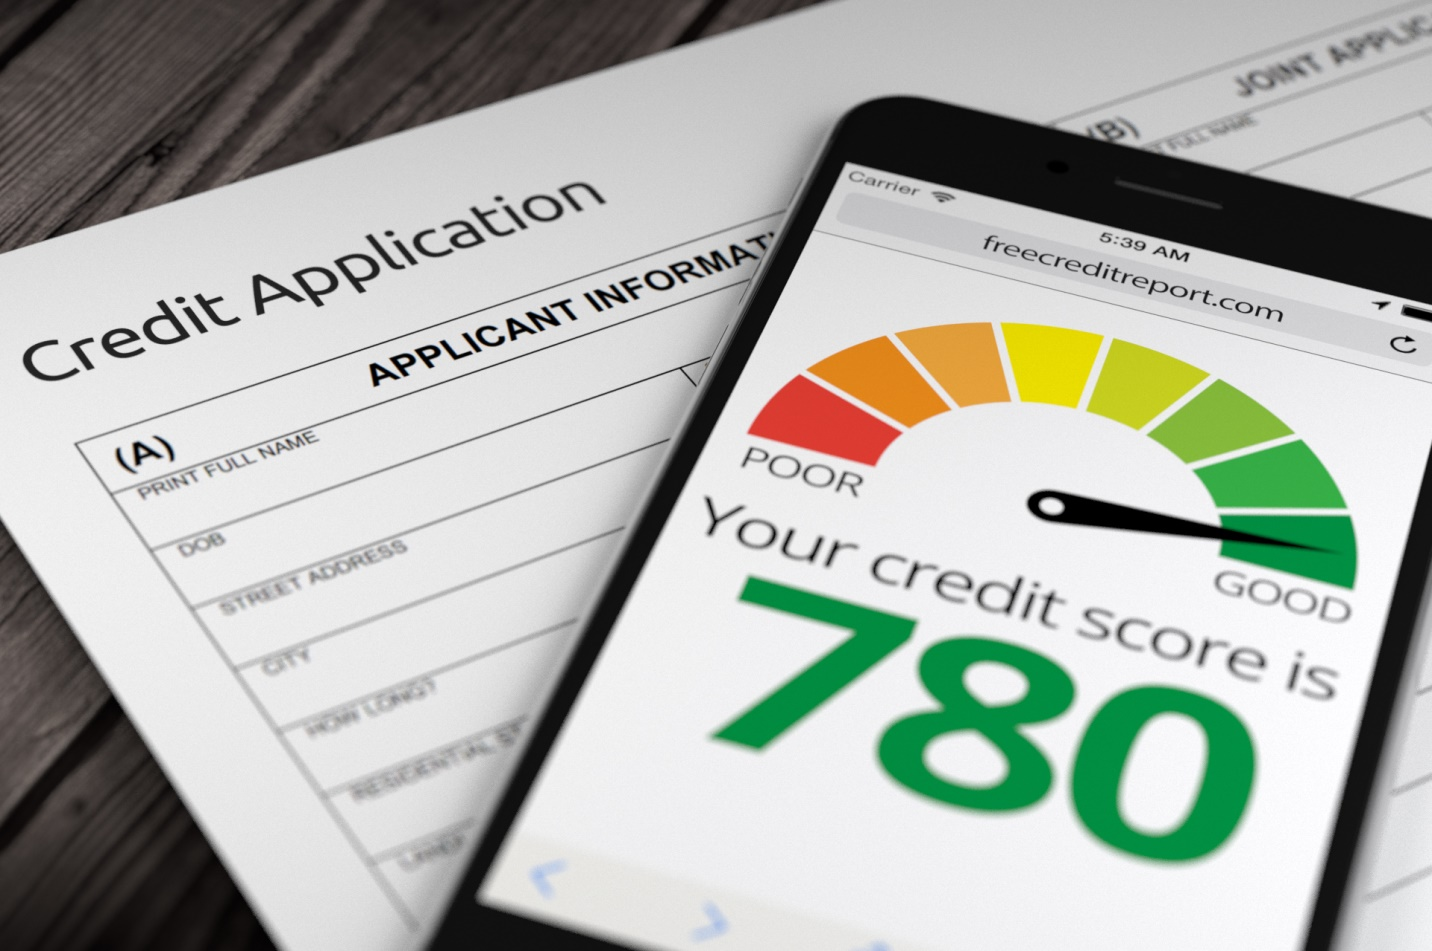 """A mobile phone placed on top of a """"Credit Application"""" and the screen showing a credit score meter with the needle pointing towards the numbers """"780"""" in green that has """"Good"""" written underneath it."""